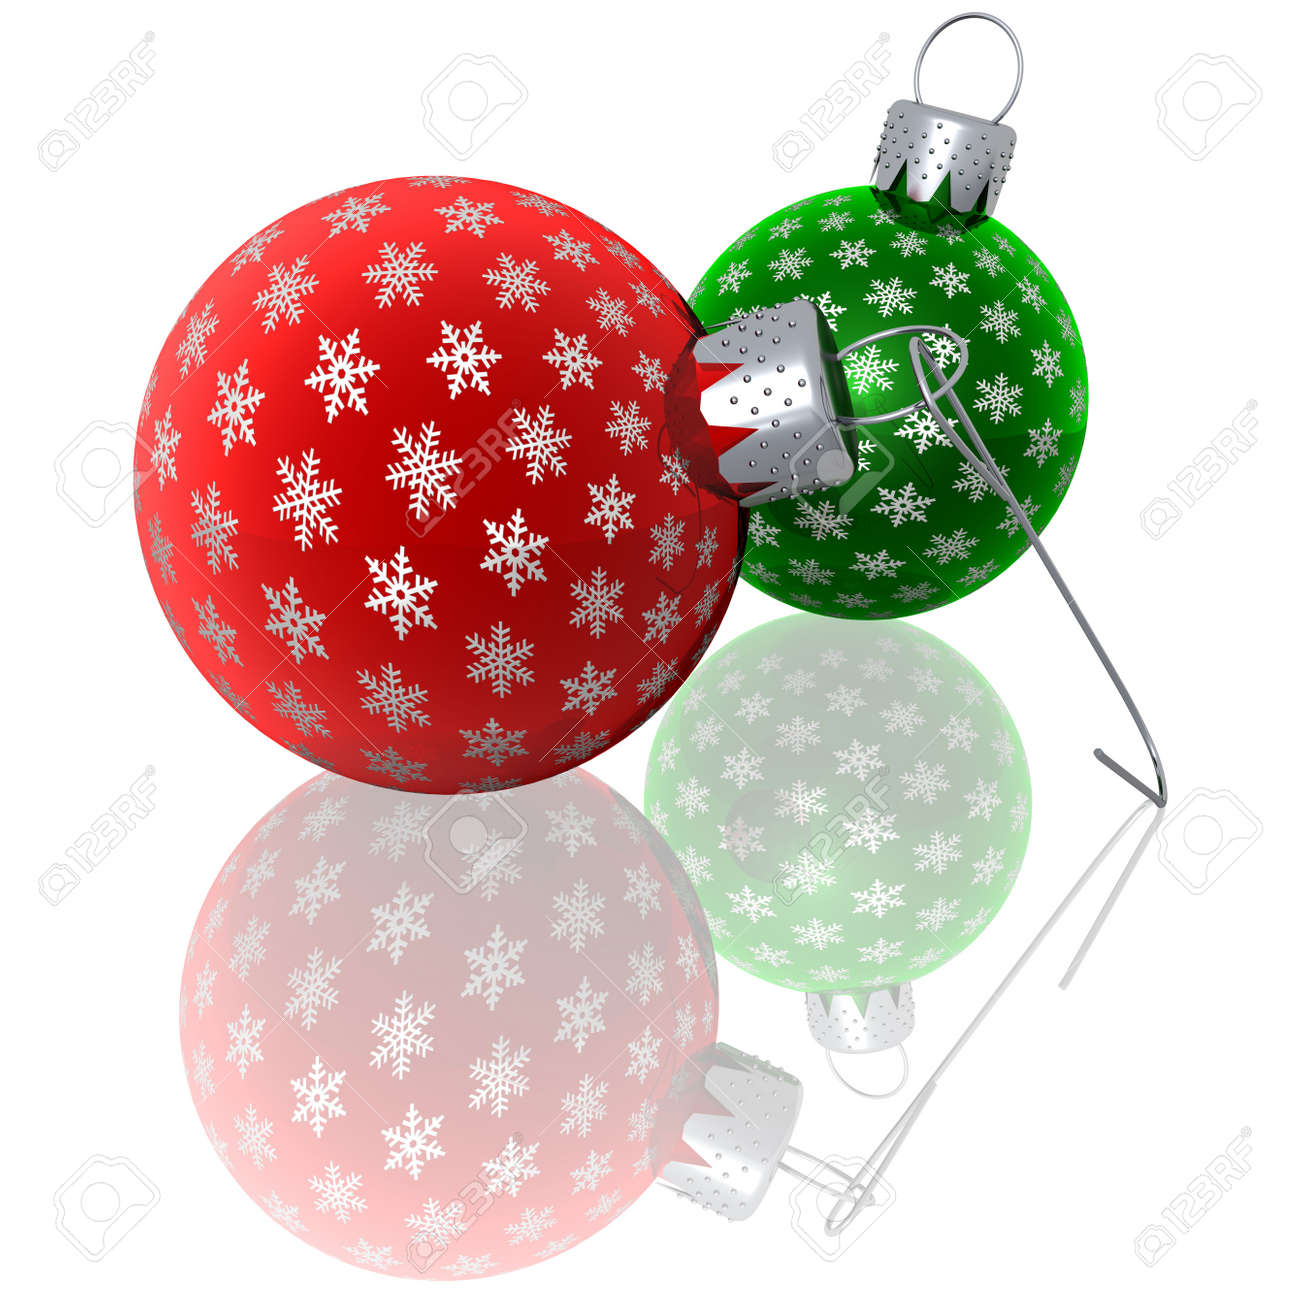 Red glass christmas ornaments - 3d Rendering Of Red And Green Glass Christmas Ornaments With Silver Snowflakes Lying On A Reflective